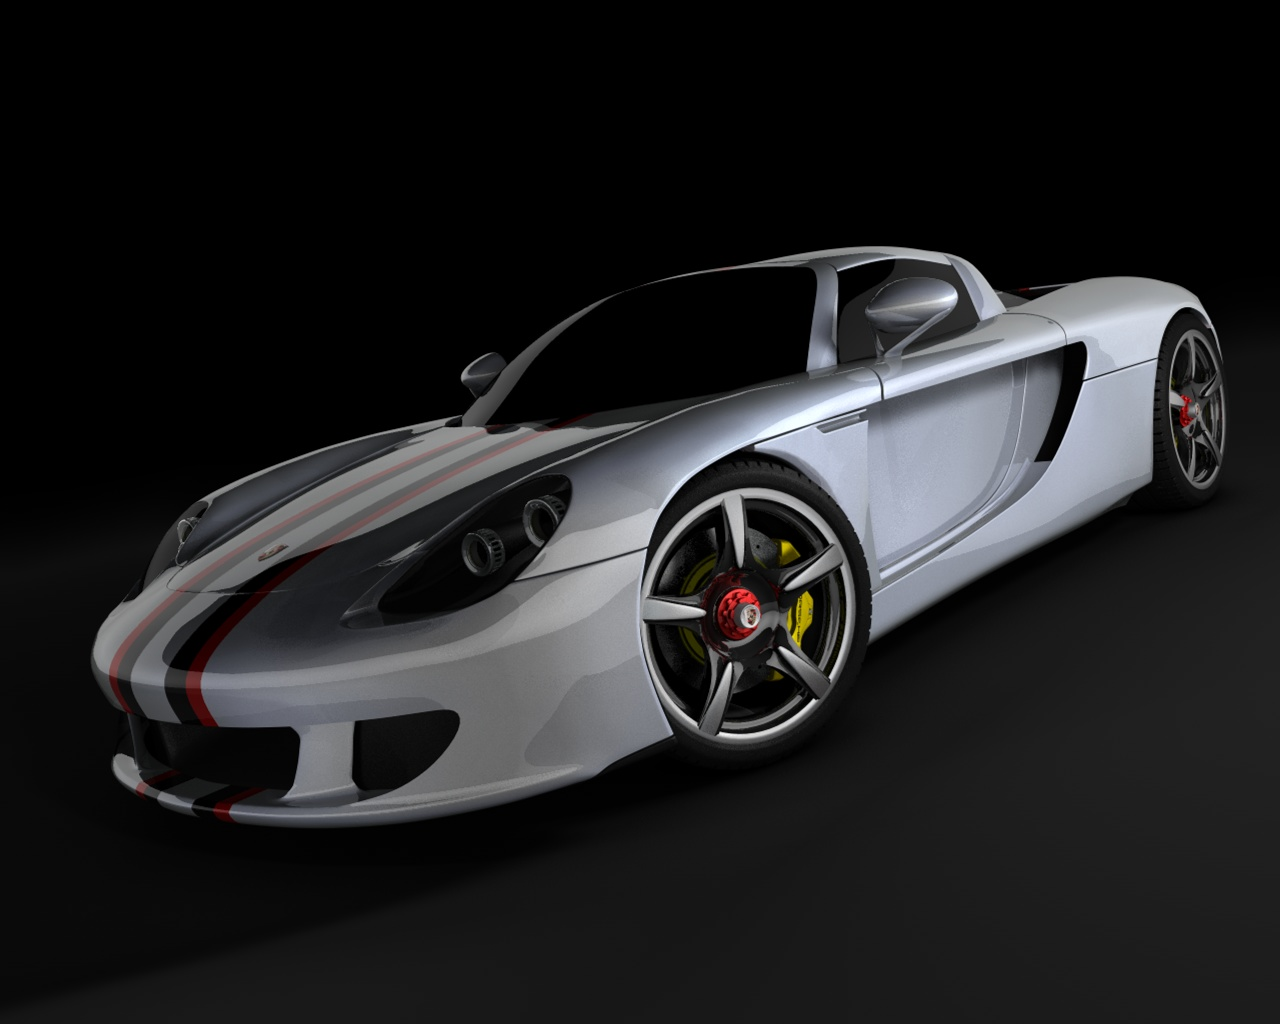 Porsche Carrera GT - Final2 by Yakul